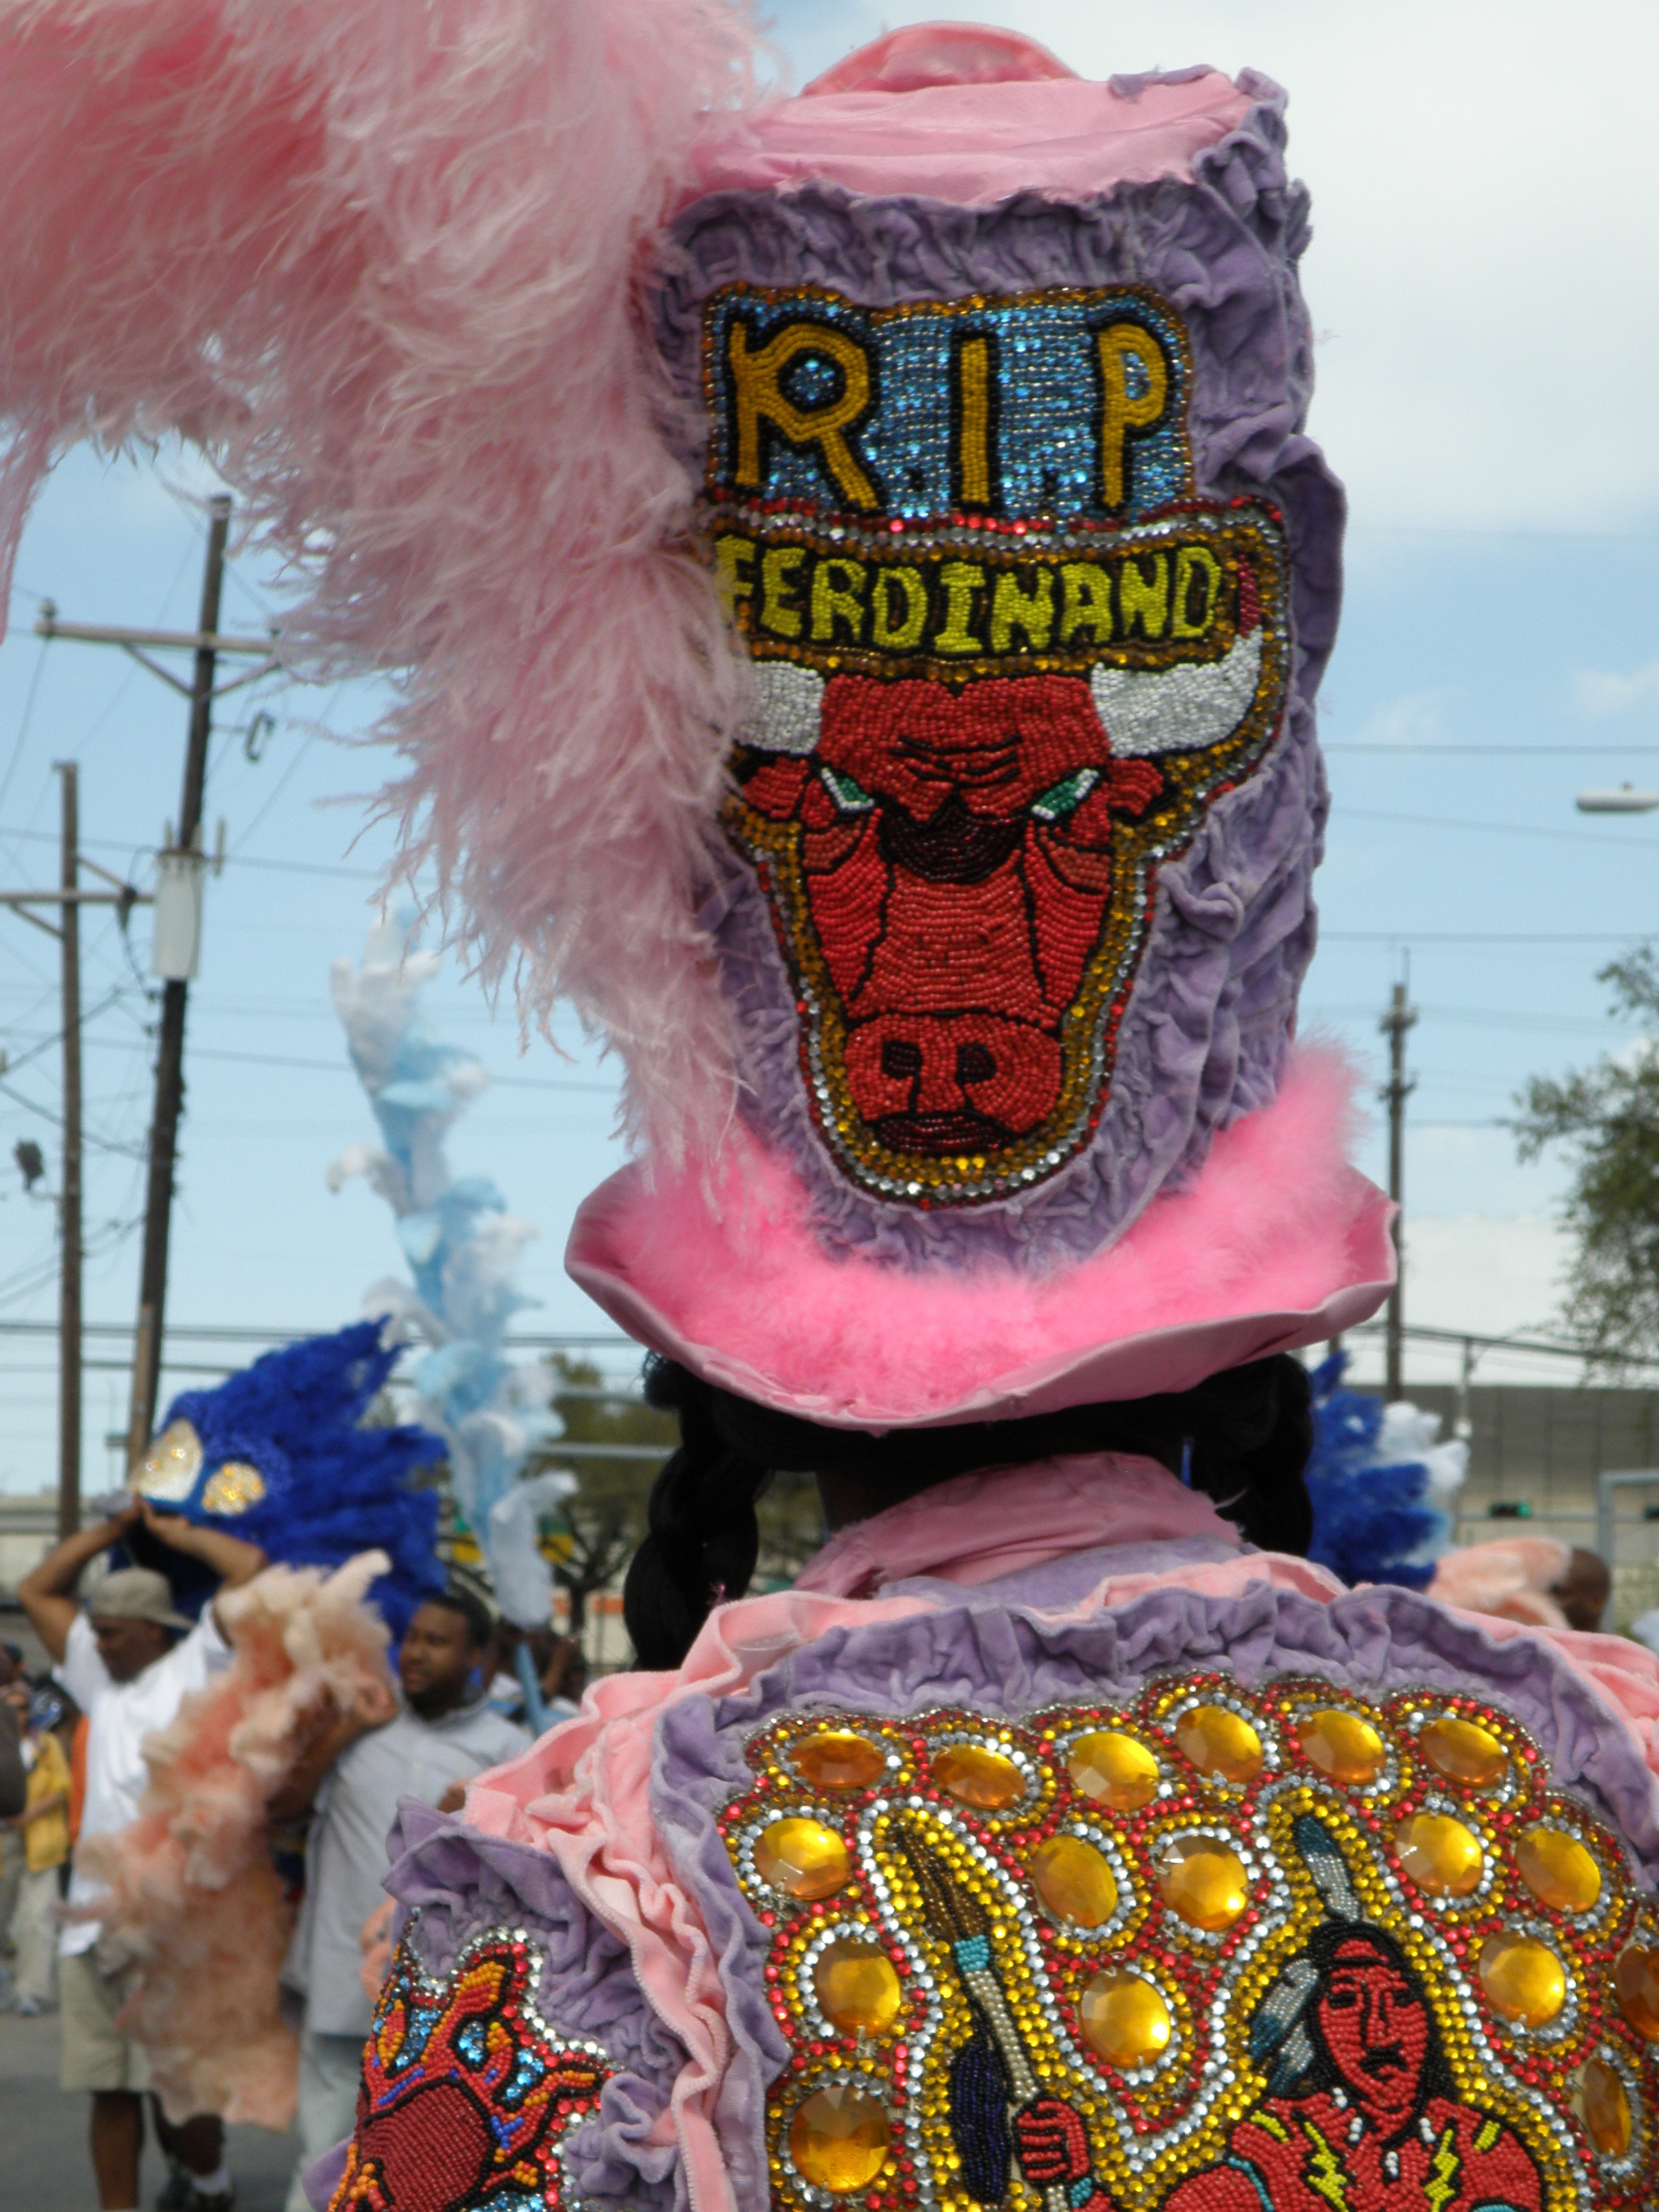 Intricate, hand beading is a hallmark of Mardi Gras Indian suits.